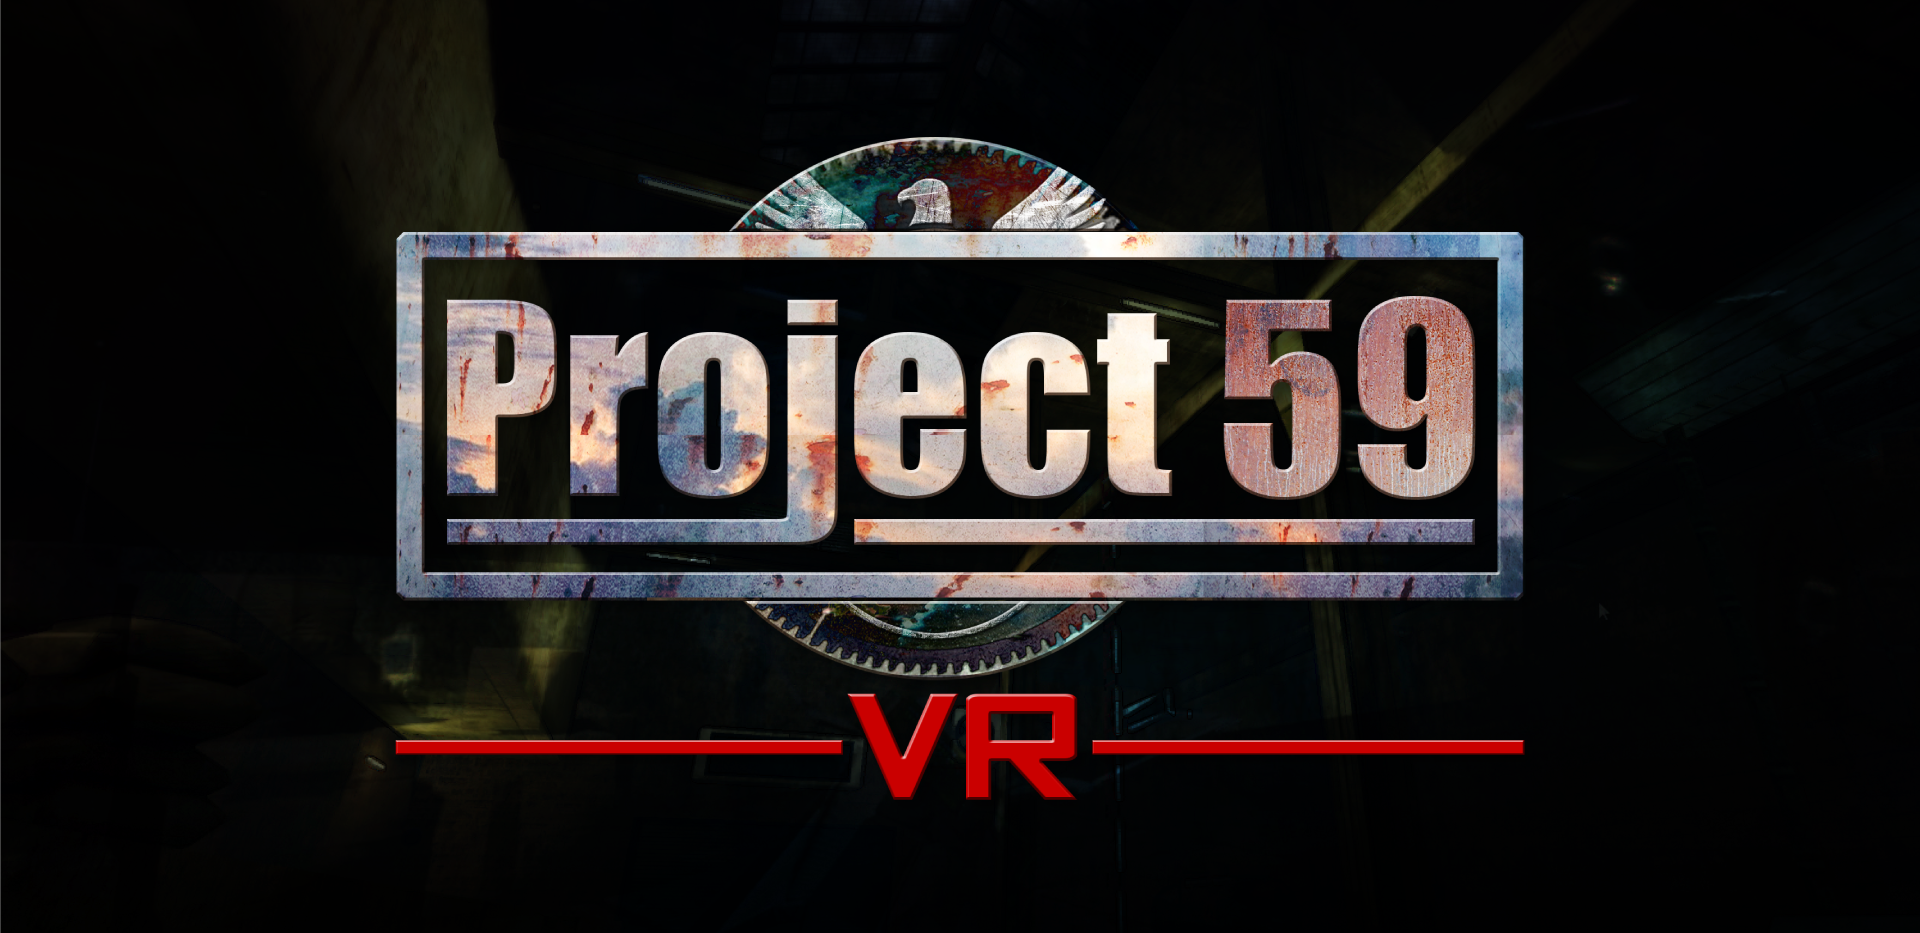 ss_project_59_001.png